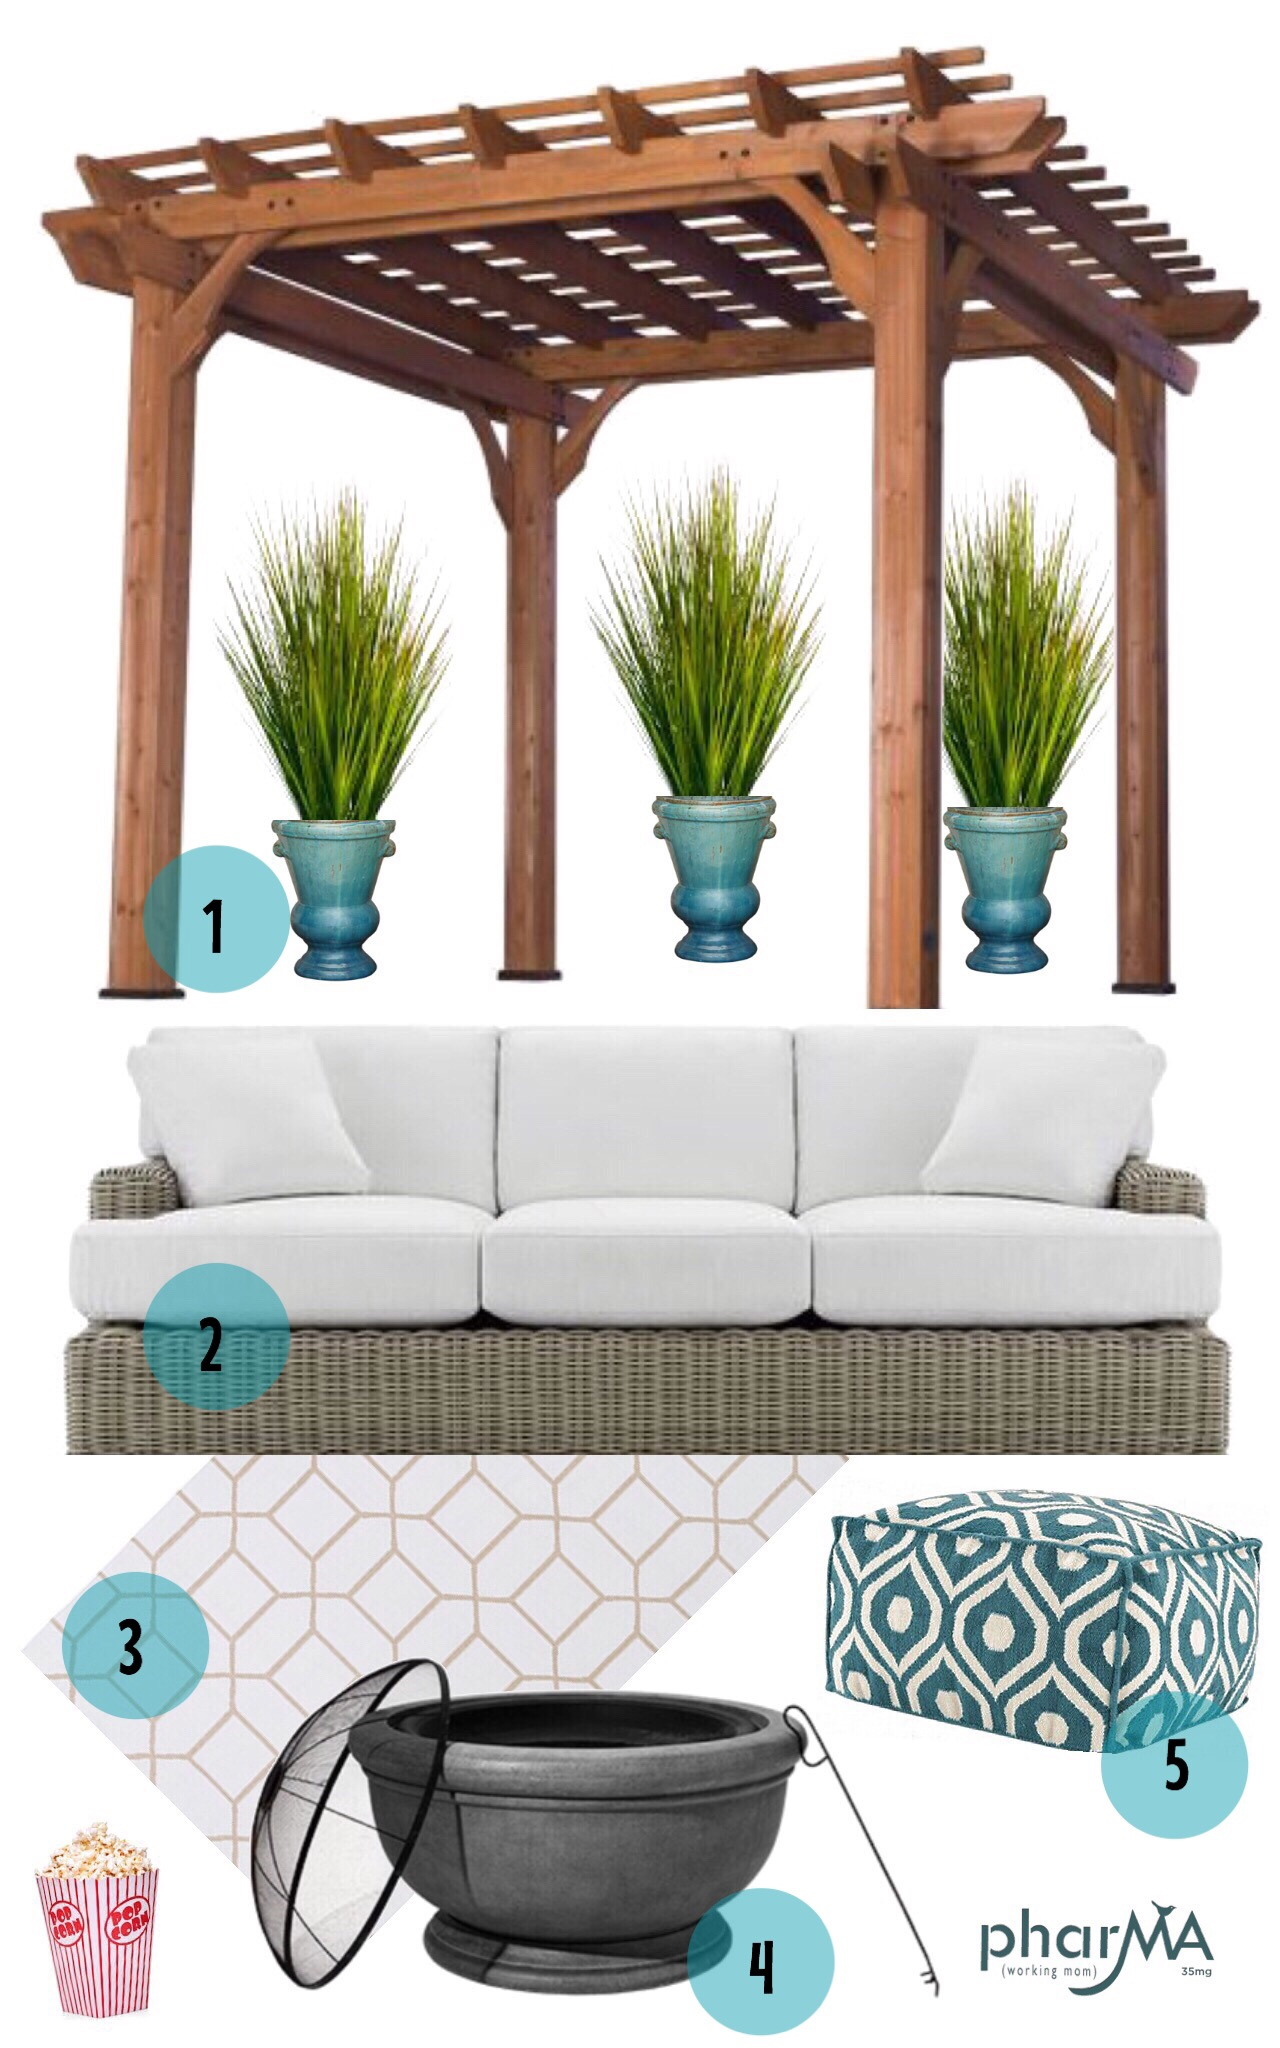 Arhaus Outdoor Retreat, outdoor movie theater, outdoor patio, arhaus, the PharMA and Arhaus, Wyatt sofa